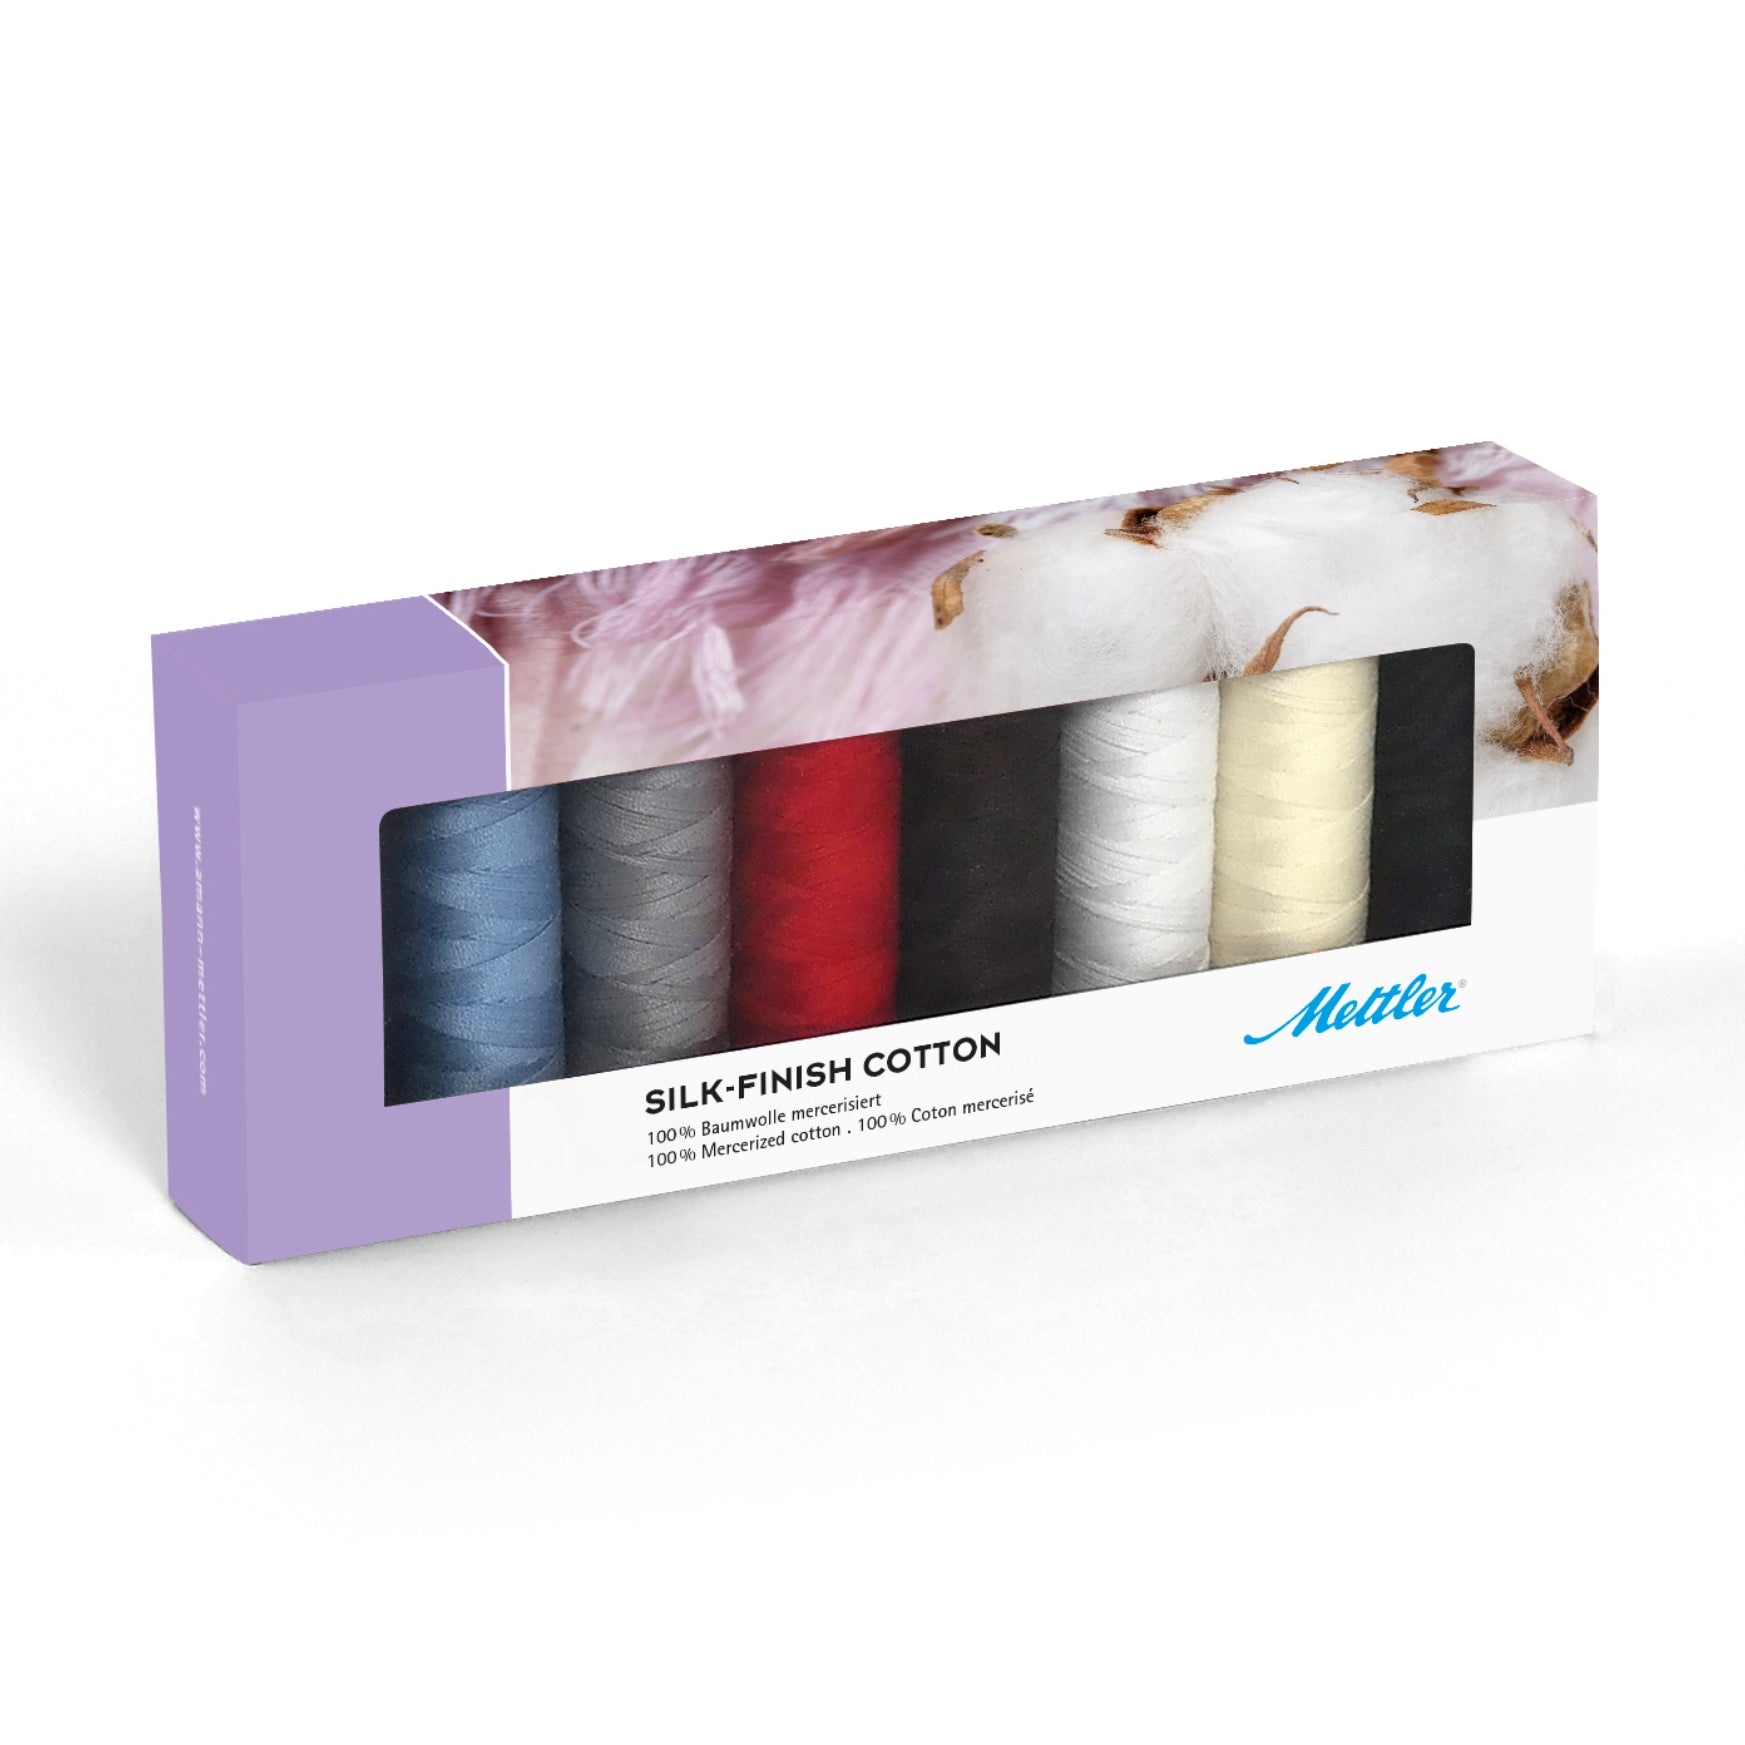 Mettler Silk-Finish Cotton No. 50 150m 8 spools - thread set